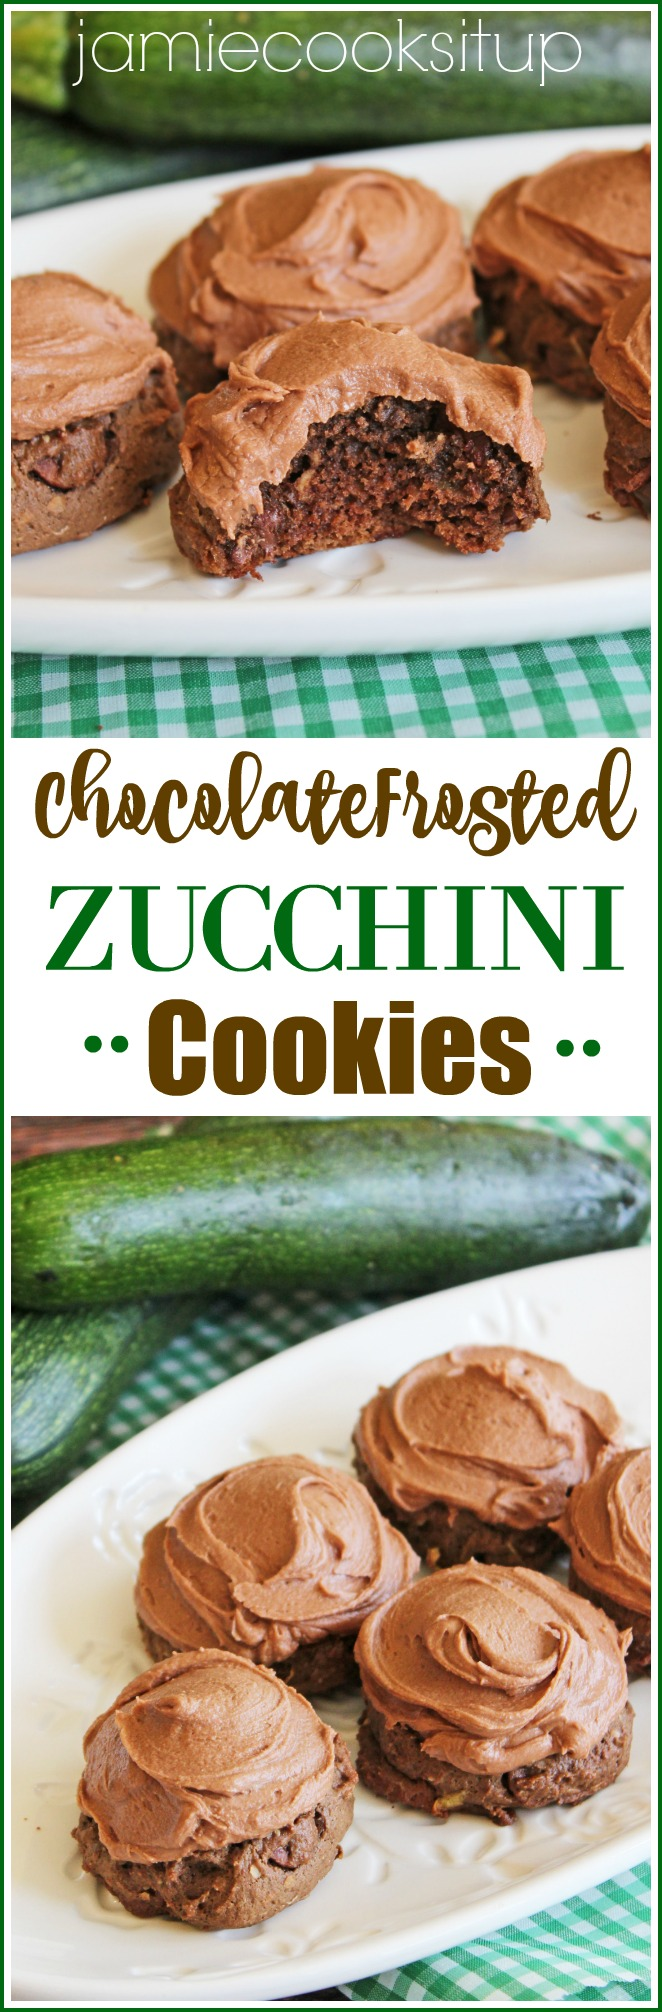 Chocolate Frosted Zucchini Cookies Jamie Cooks It Up!